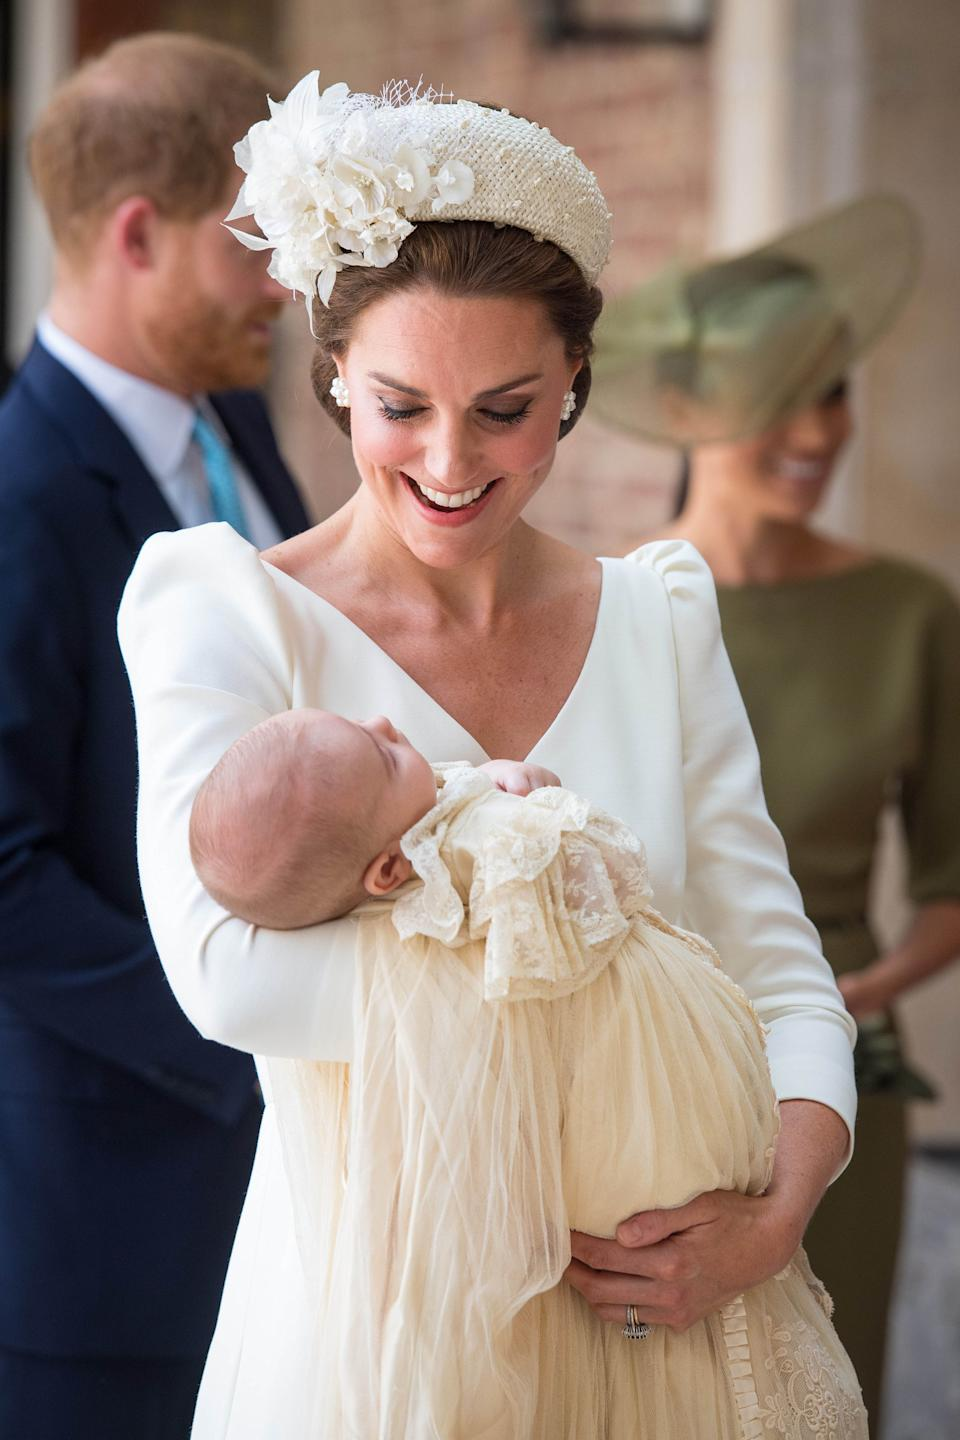 The Duchess of Cambridge carries Prince Louis as they arrive for his christening service at the Chapel Royal, St James's Palace, London.